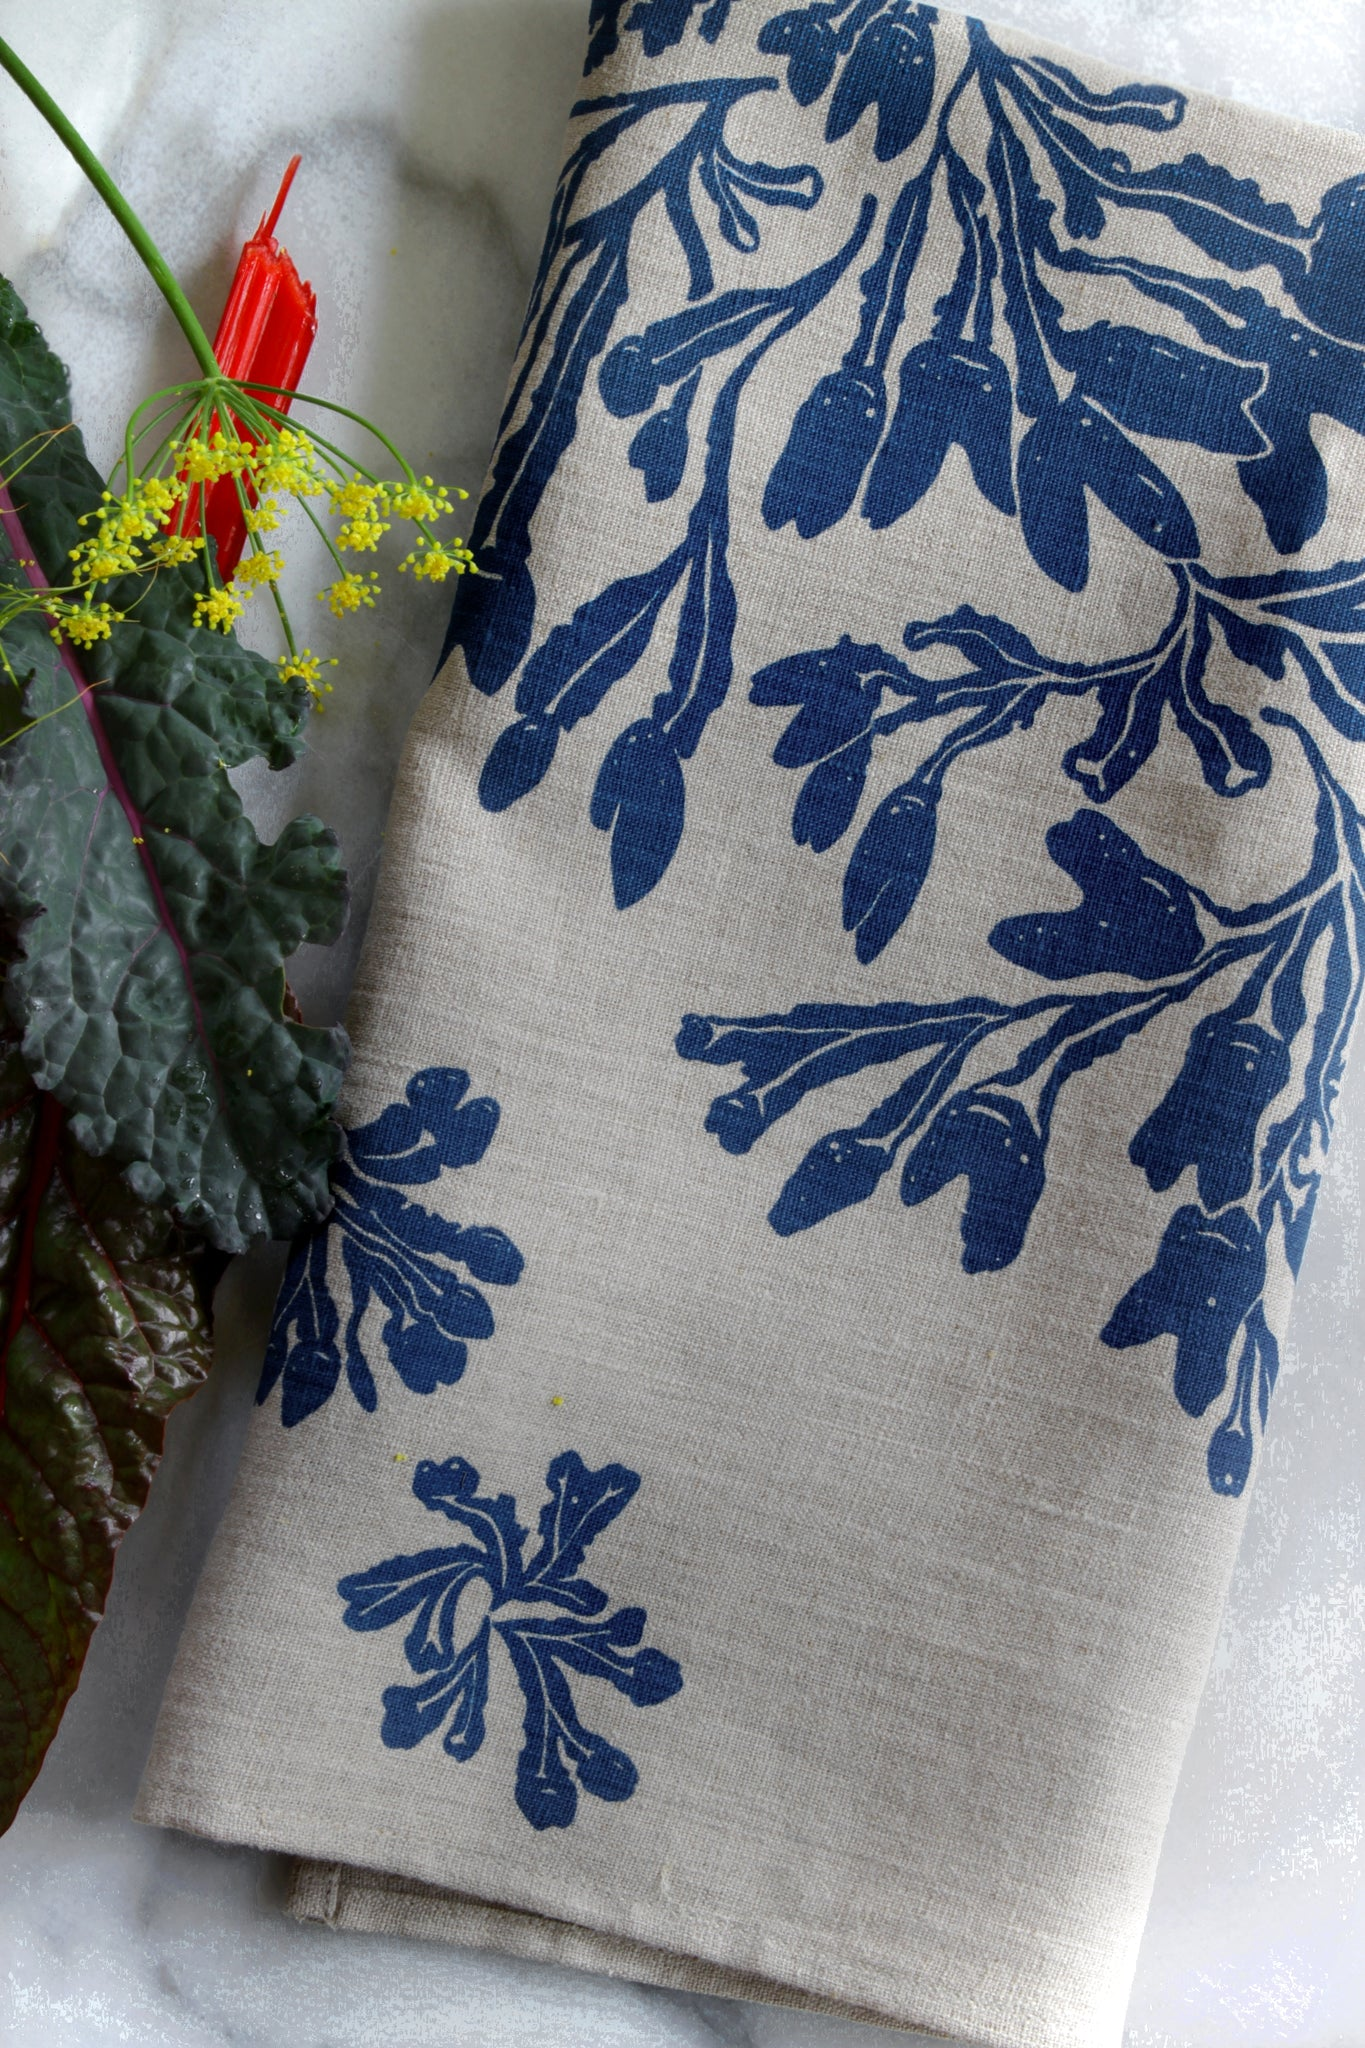 Seaweed Fucus Kitchen Towel in Indigo on Natural Linen